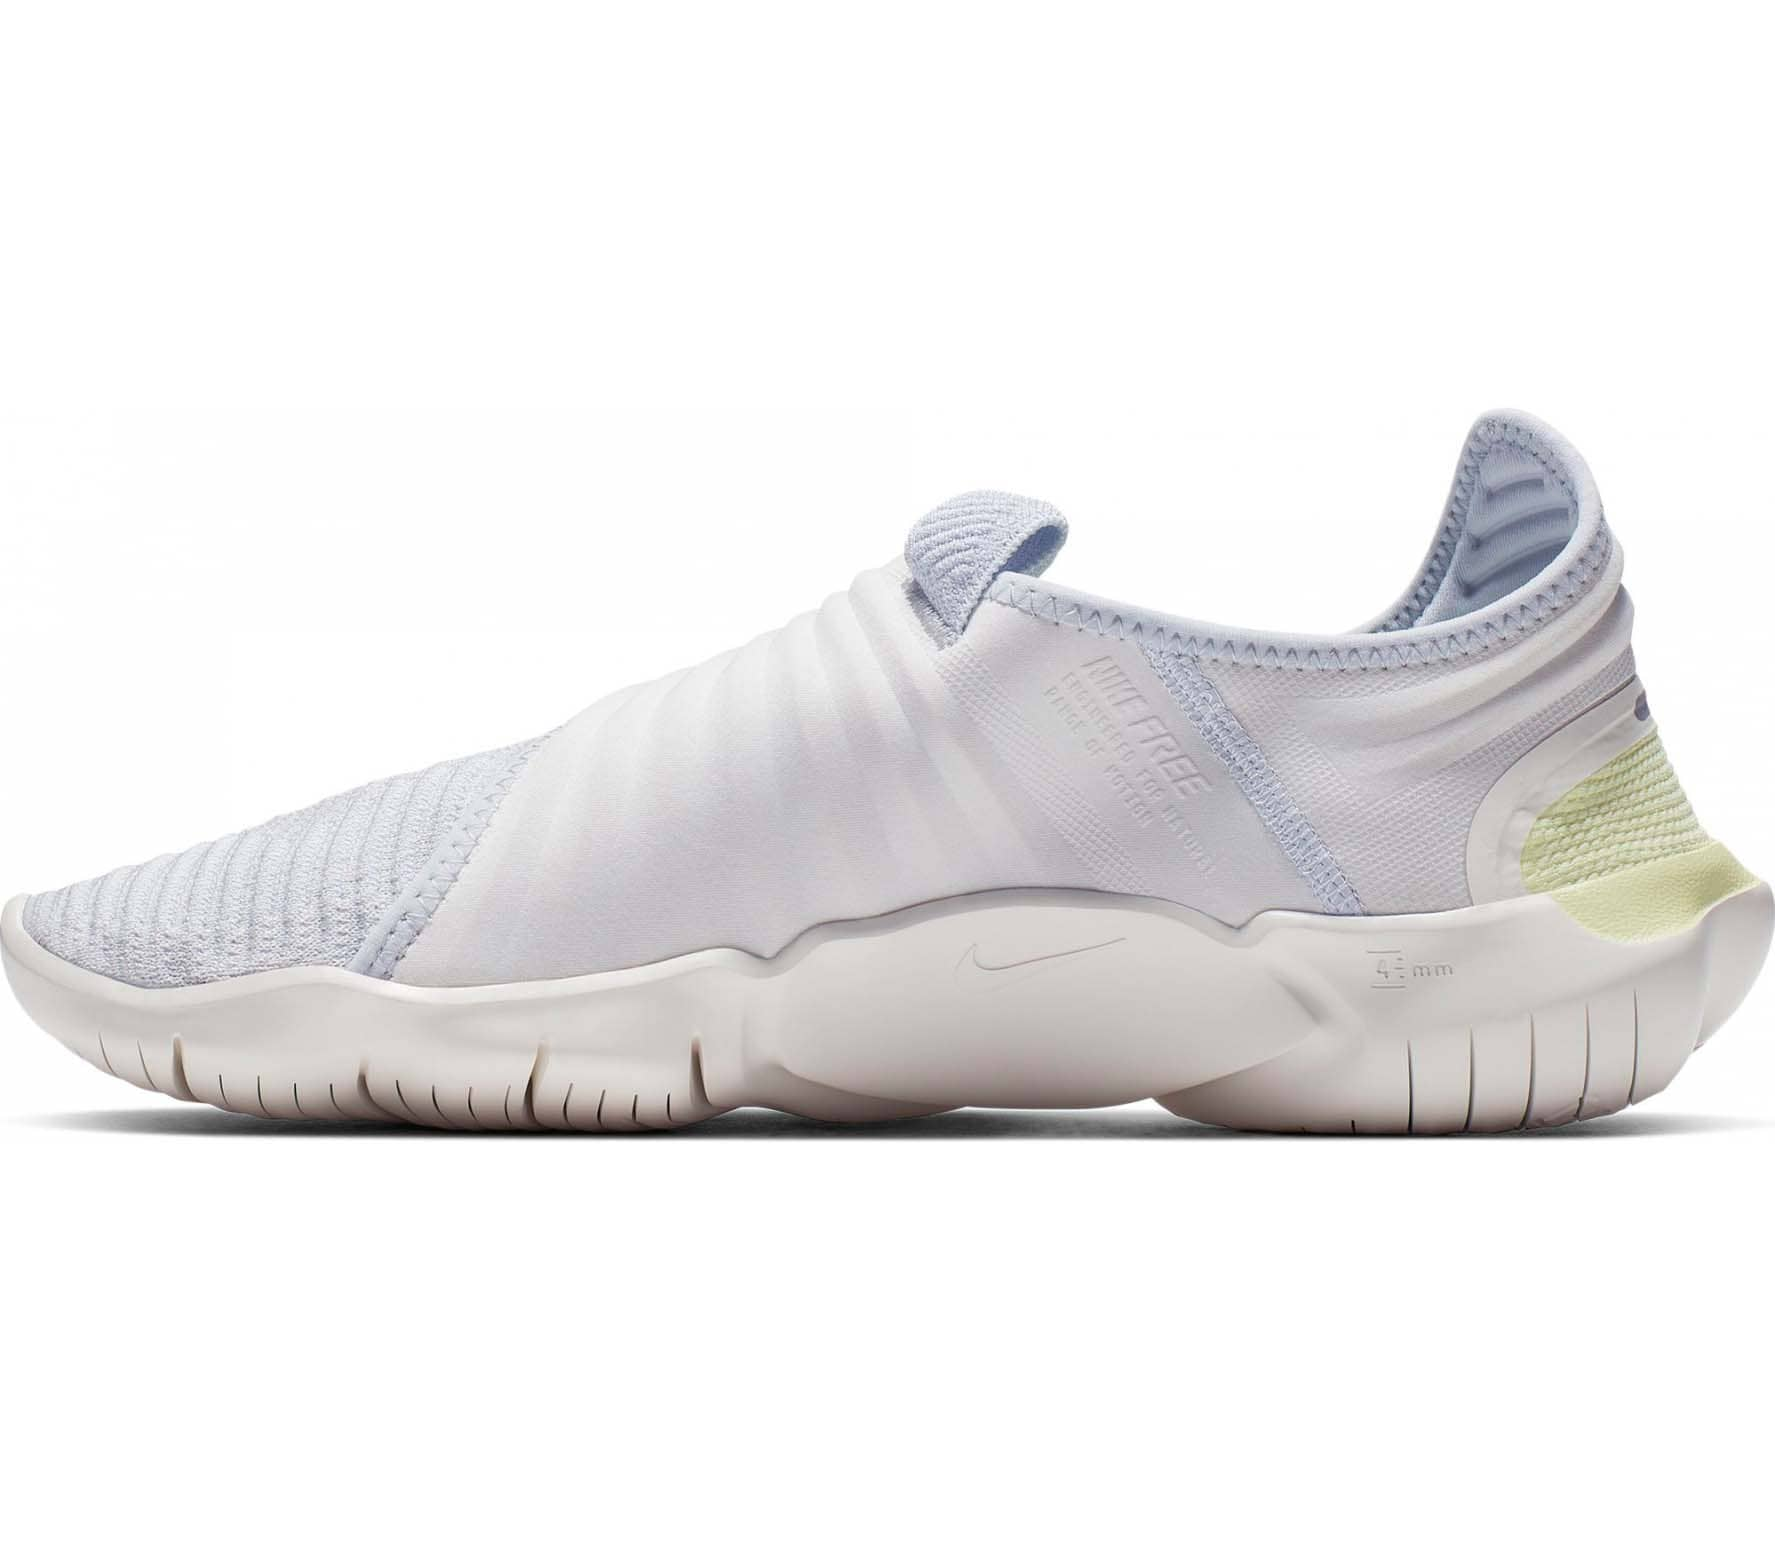 ef17fda6f6c23 Nike Free RN Flyknit 3.0 Men Running Shoes white - buy it at the ...